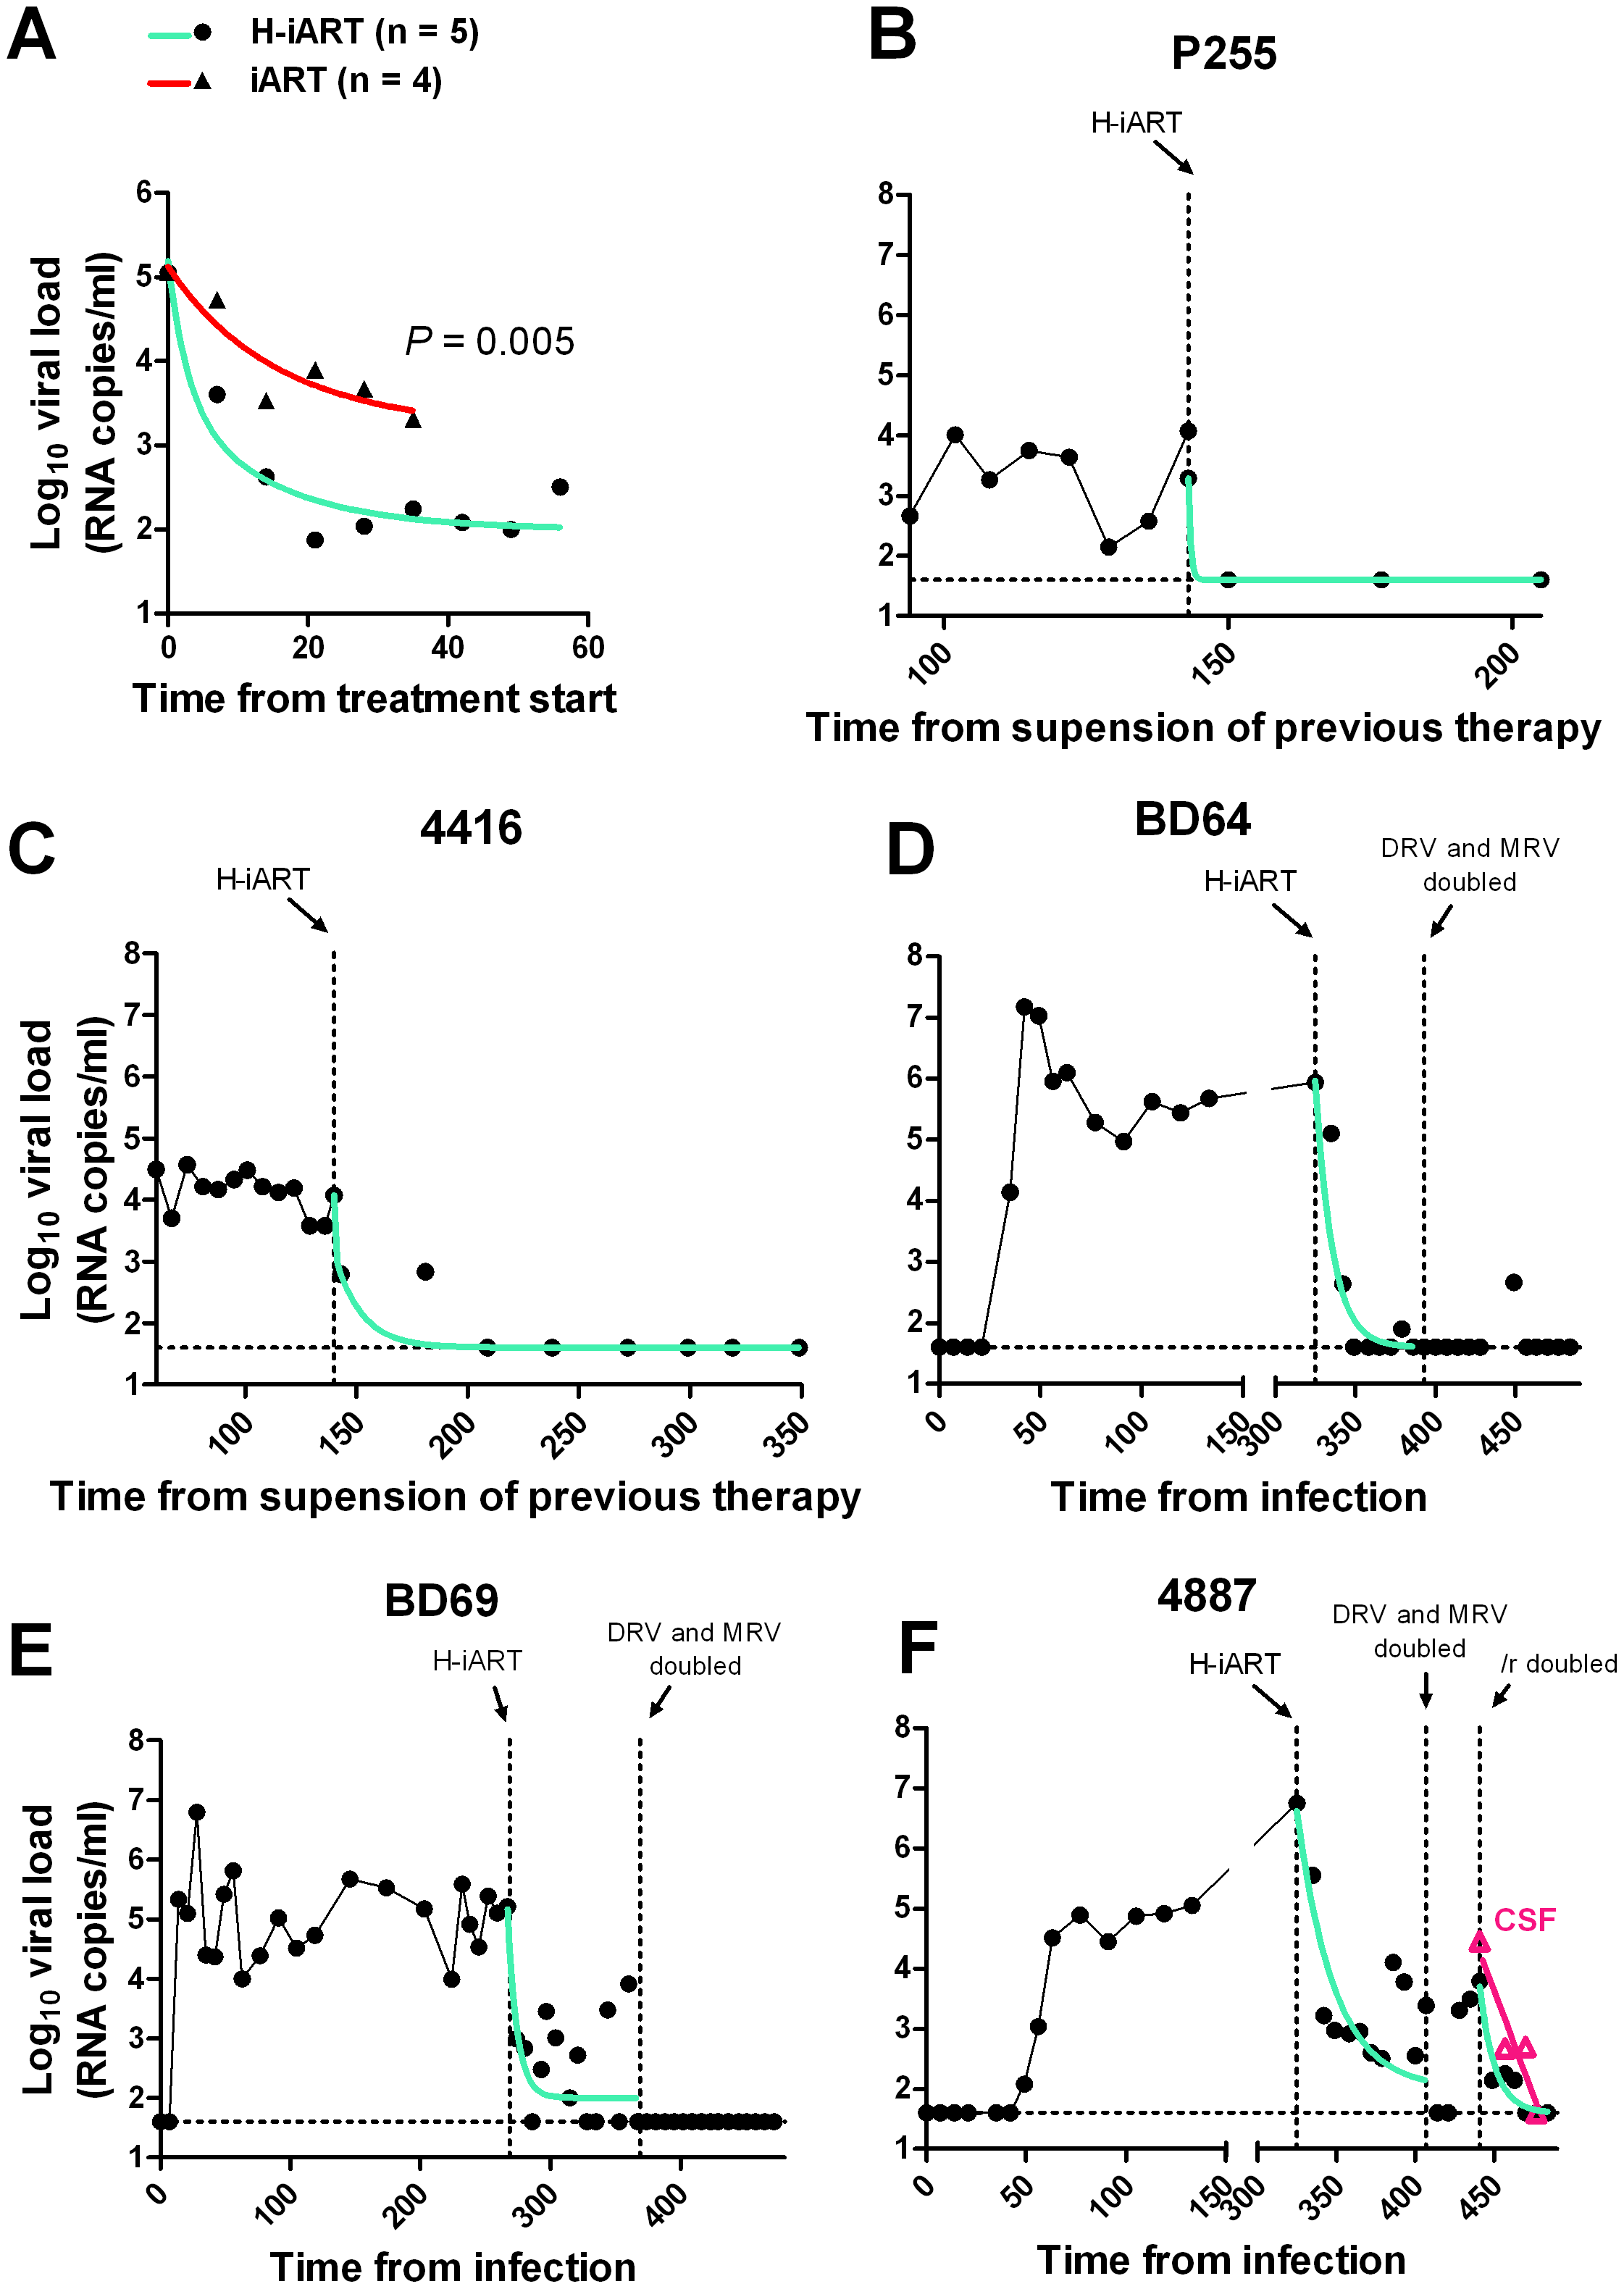 Viral load decay dynamics under H-iART treatment.